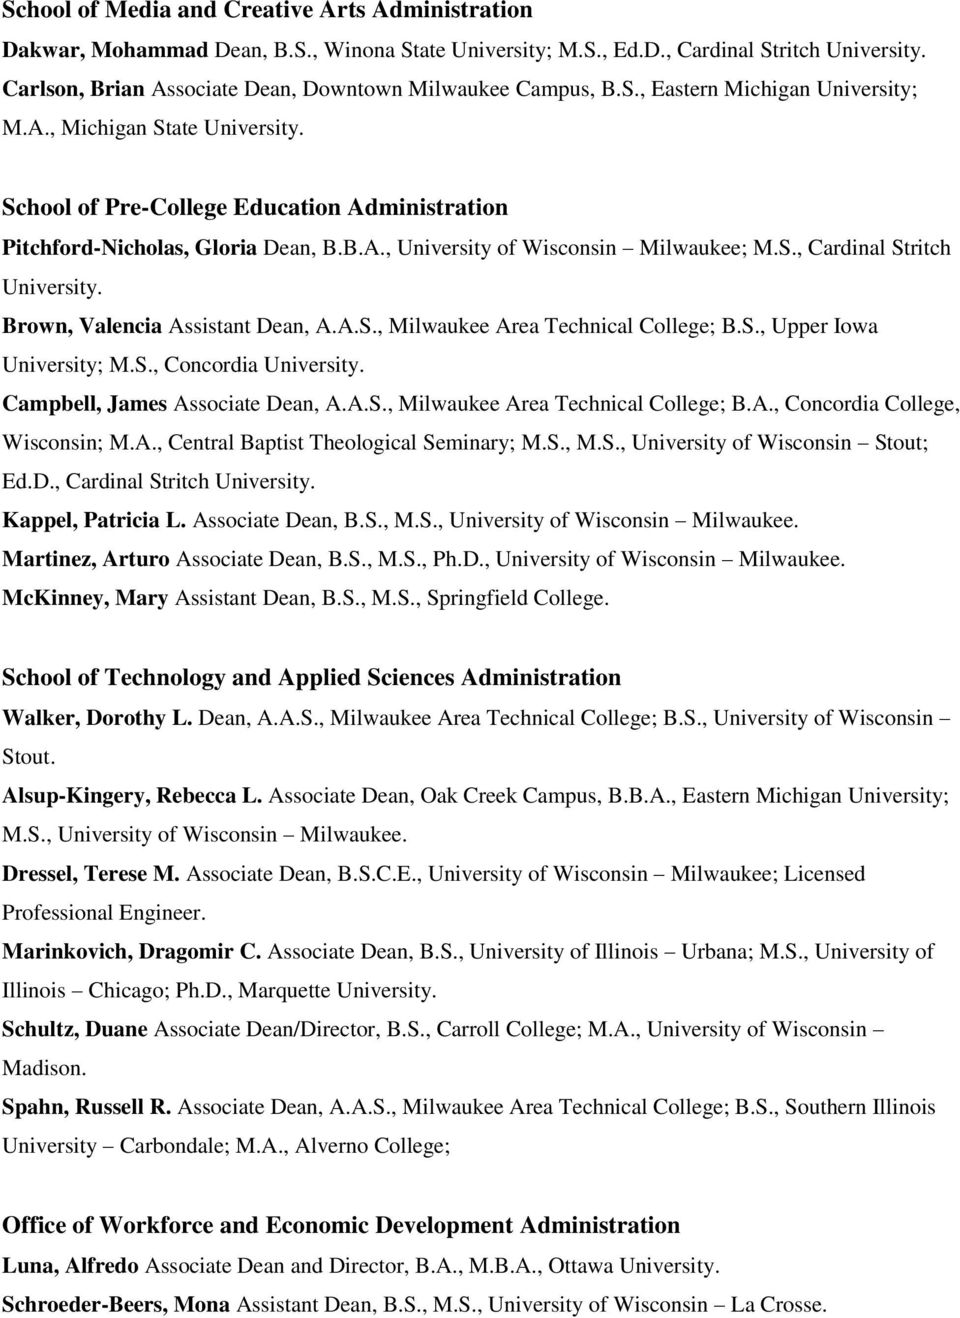 A.S., Milwaukee Area Technical College; B.S., Upper Iowa University; M.S., Concordia Campbell, James Associate Dean, A.A.S., Milwaukee Area Technical College; B.A., Concordia College, Wisconsin; M.A., Central Baptist Theological Seminary; M.